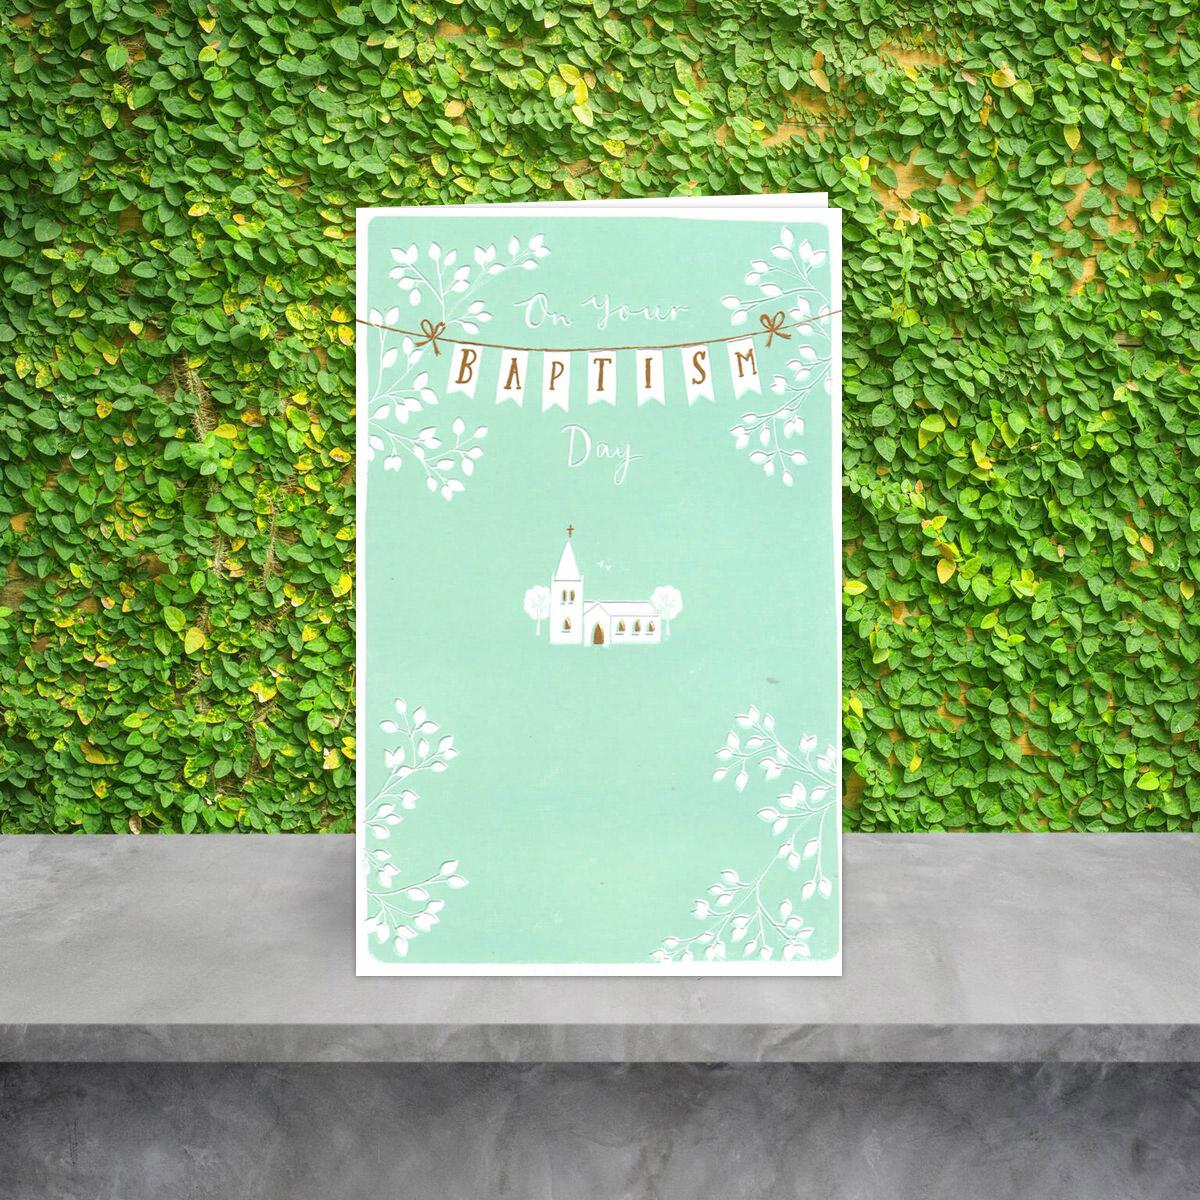 Baptism Church Greeting Card On A Wooden Shelf